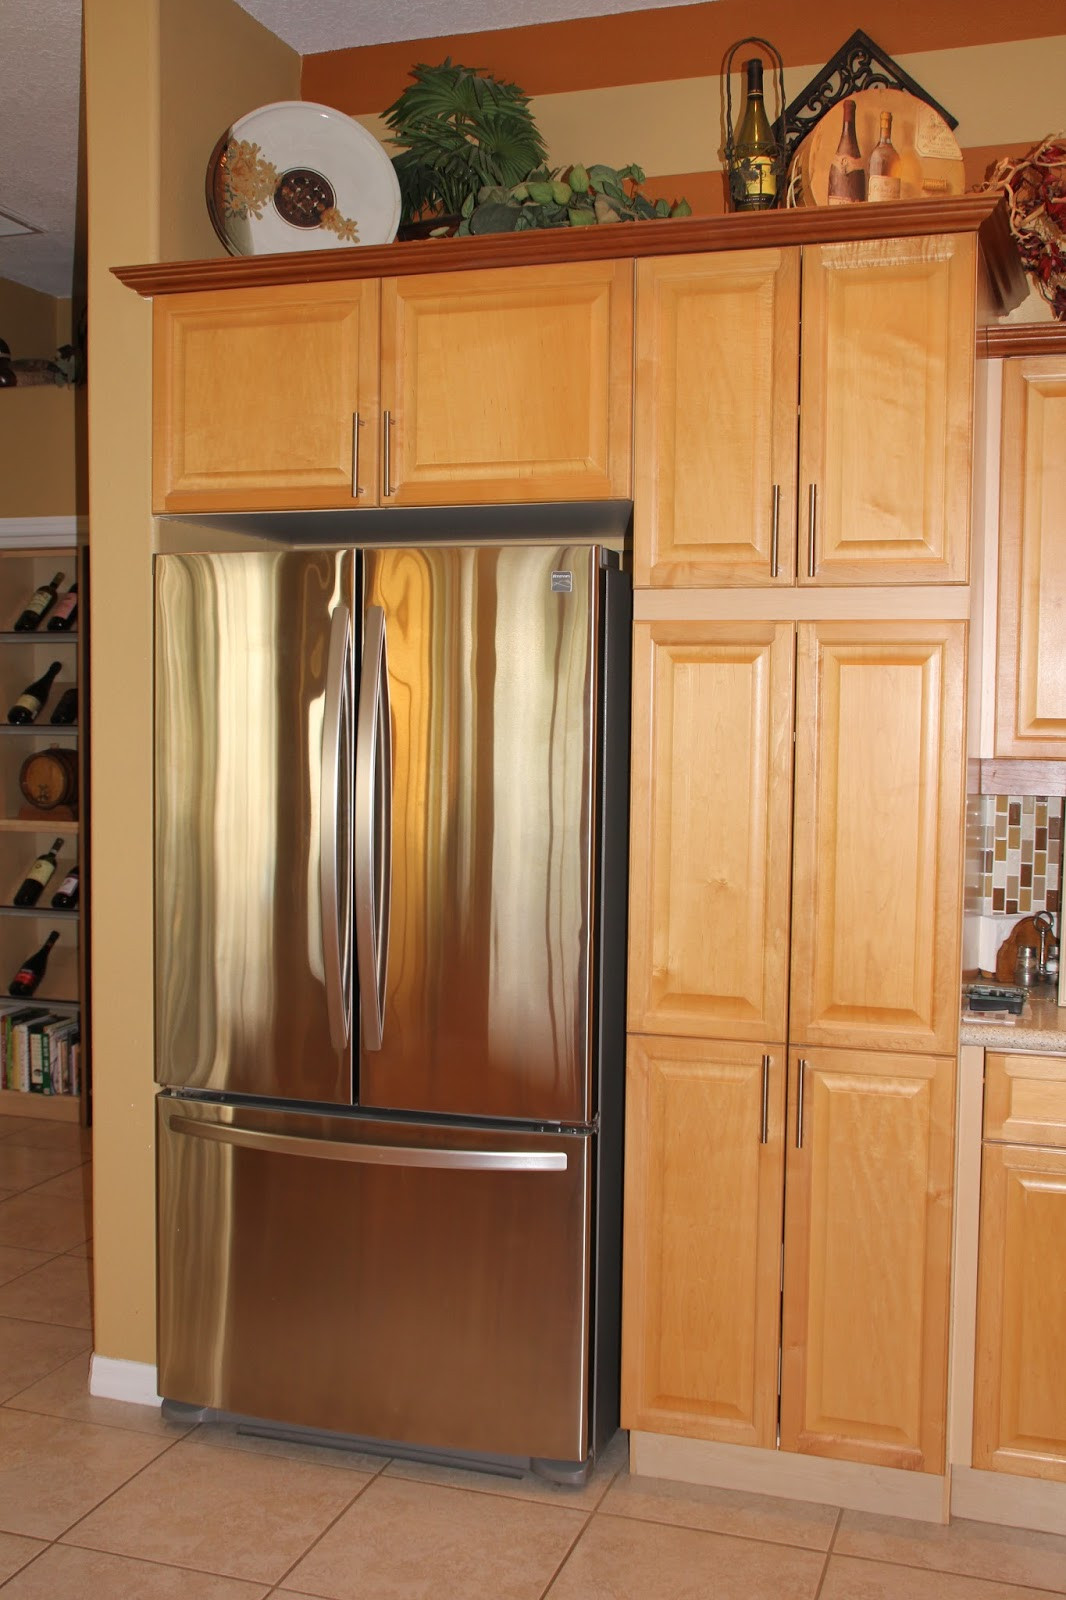 Best ideas about Large Pantry Cabinet . Save or Pin Robyn Story Designs and Boutique Kitchen Re do Part 3 Now.